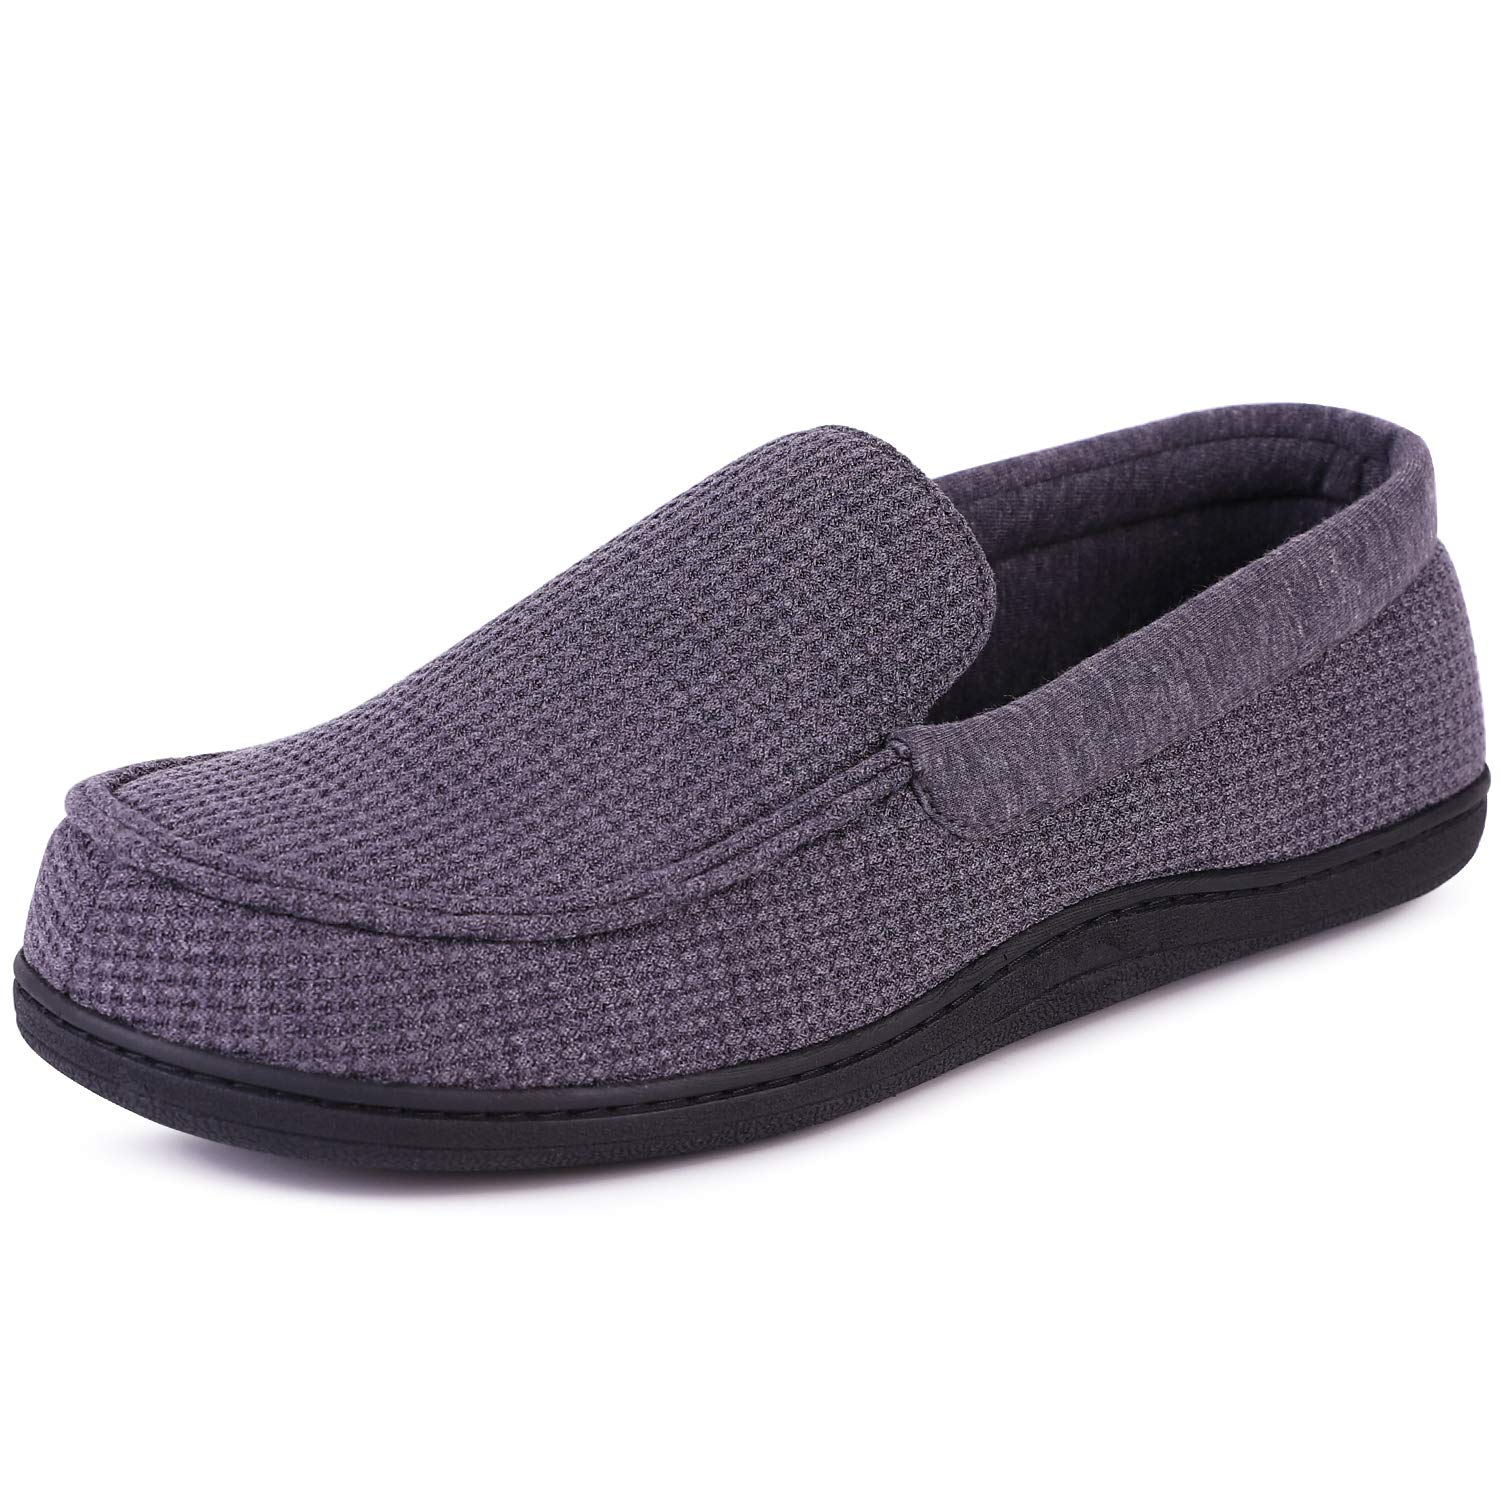 0ba7ddc83269 Men s Comfort Memory Foam Moccasin Slippers Breathable Cotton Knit House  Shoes w Anti-Skid Rubber Sole